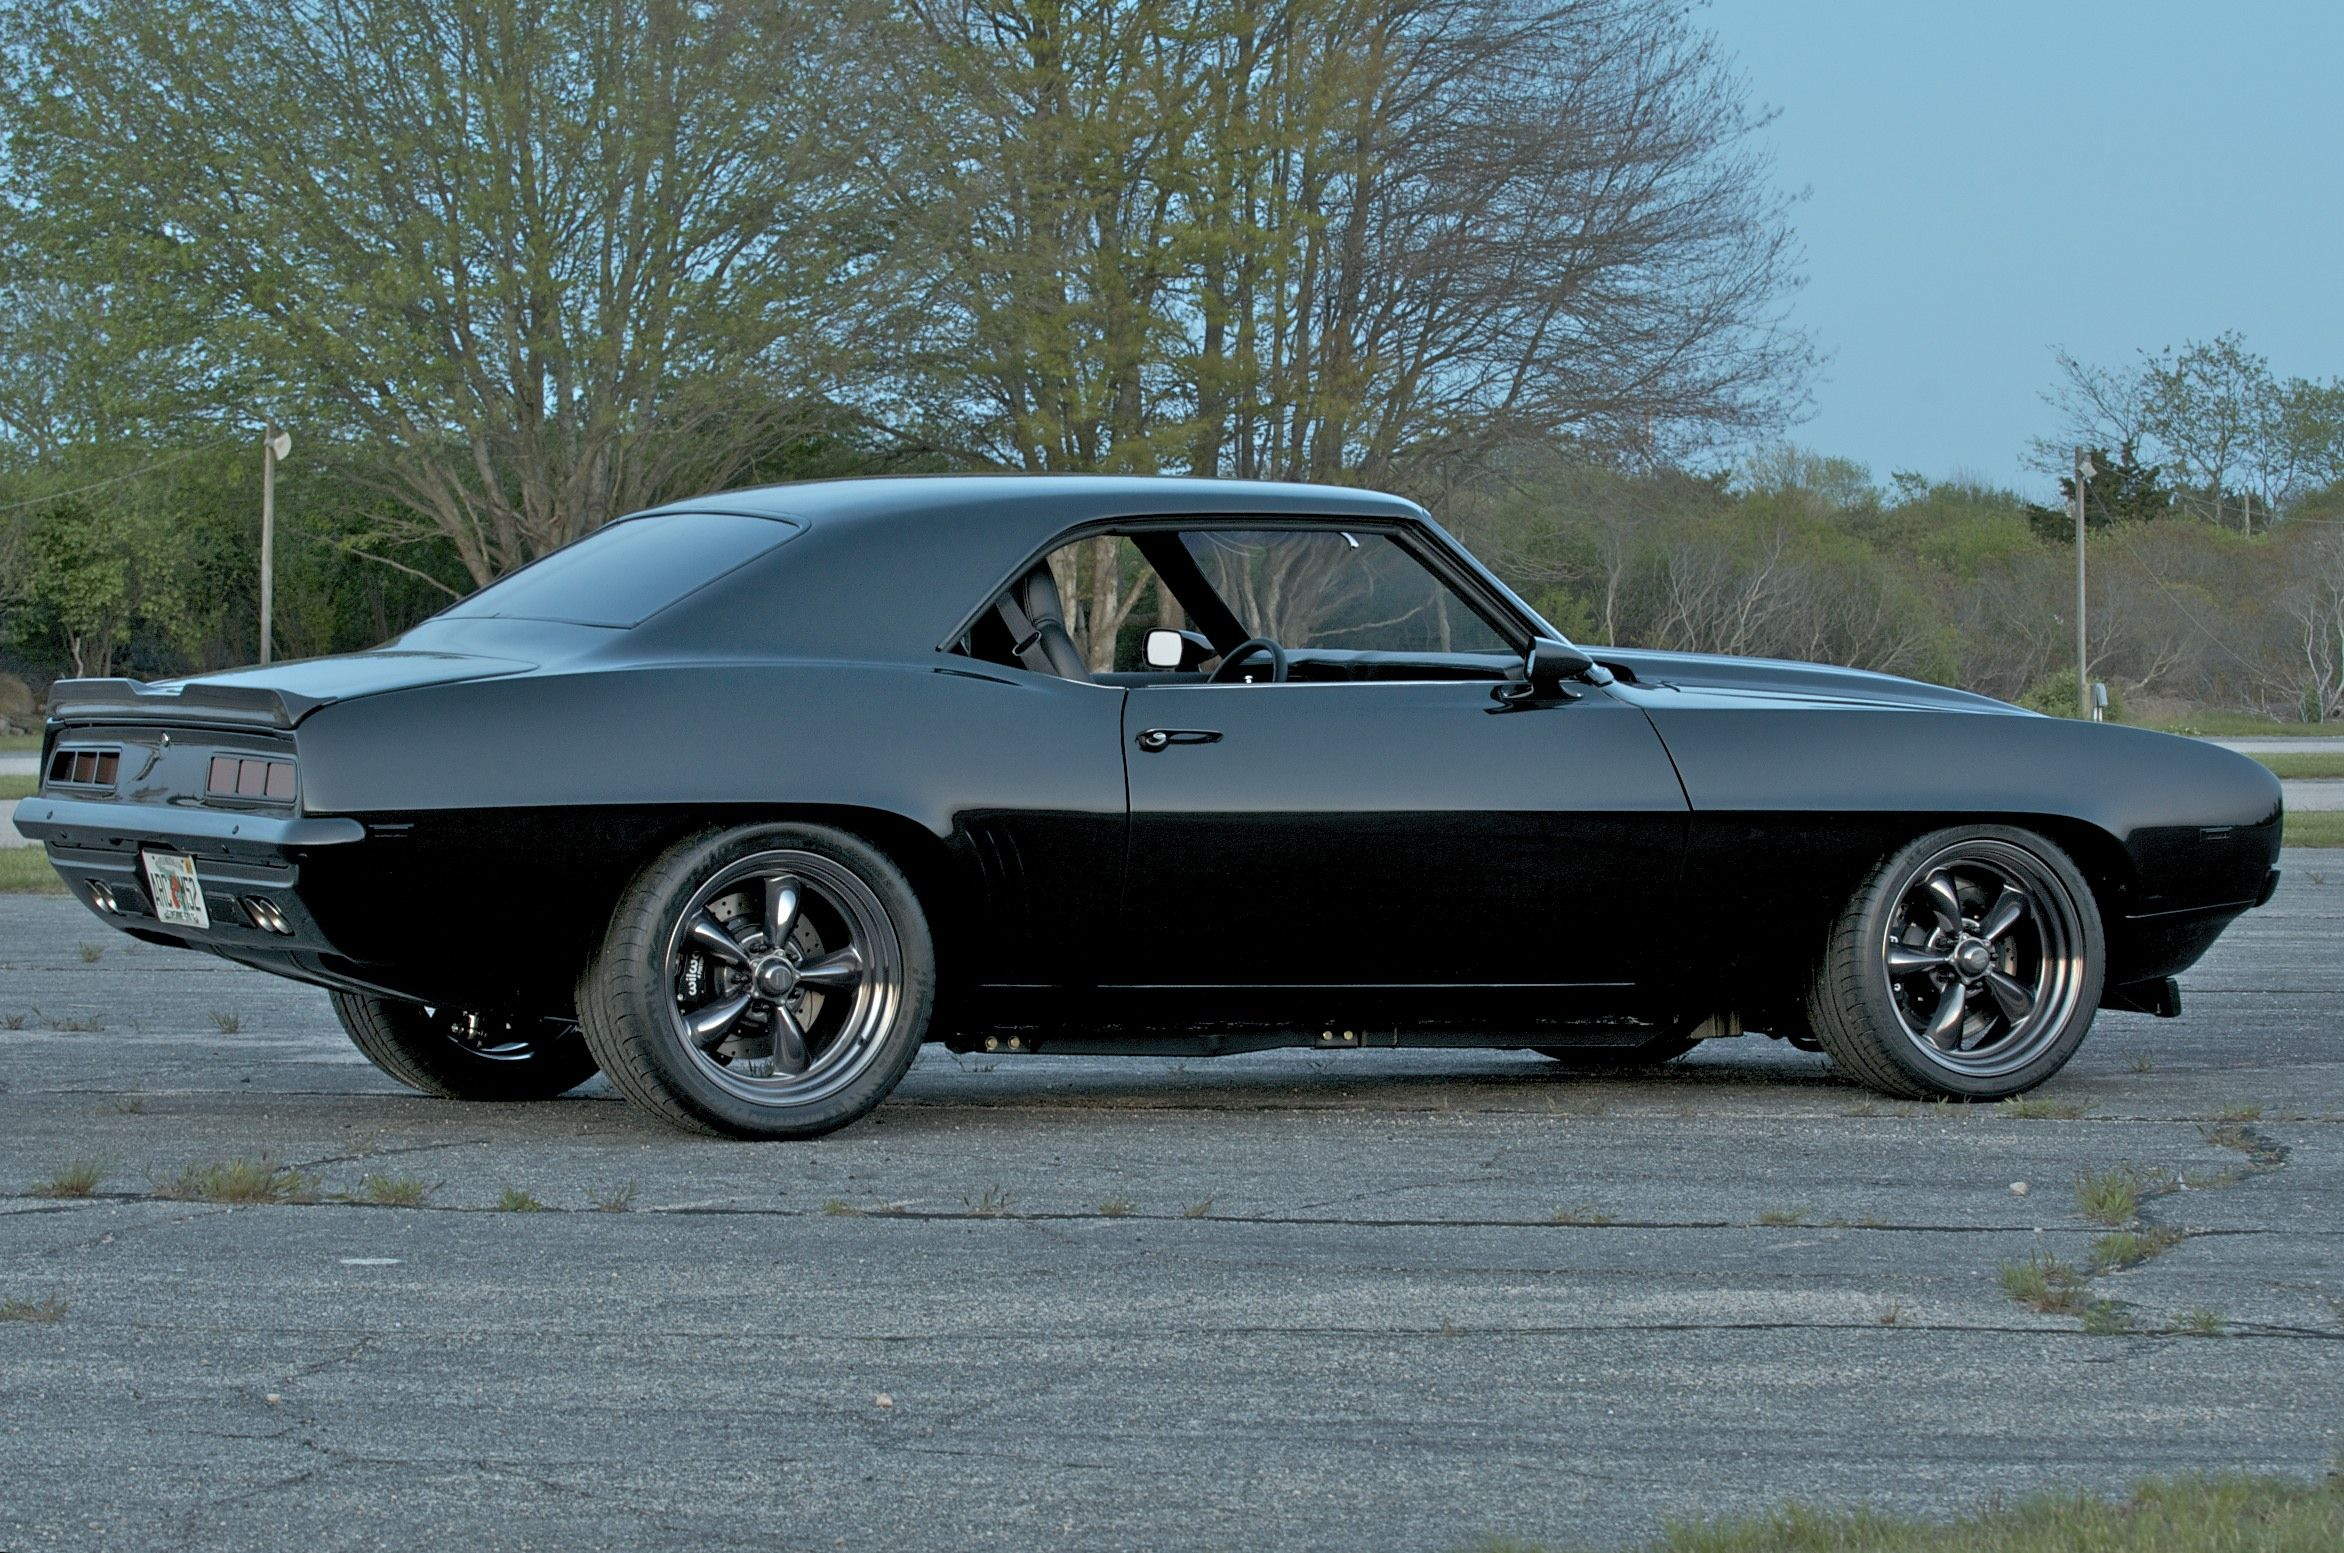 1969 Chevrolet Camaro SS - Muscle Car